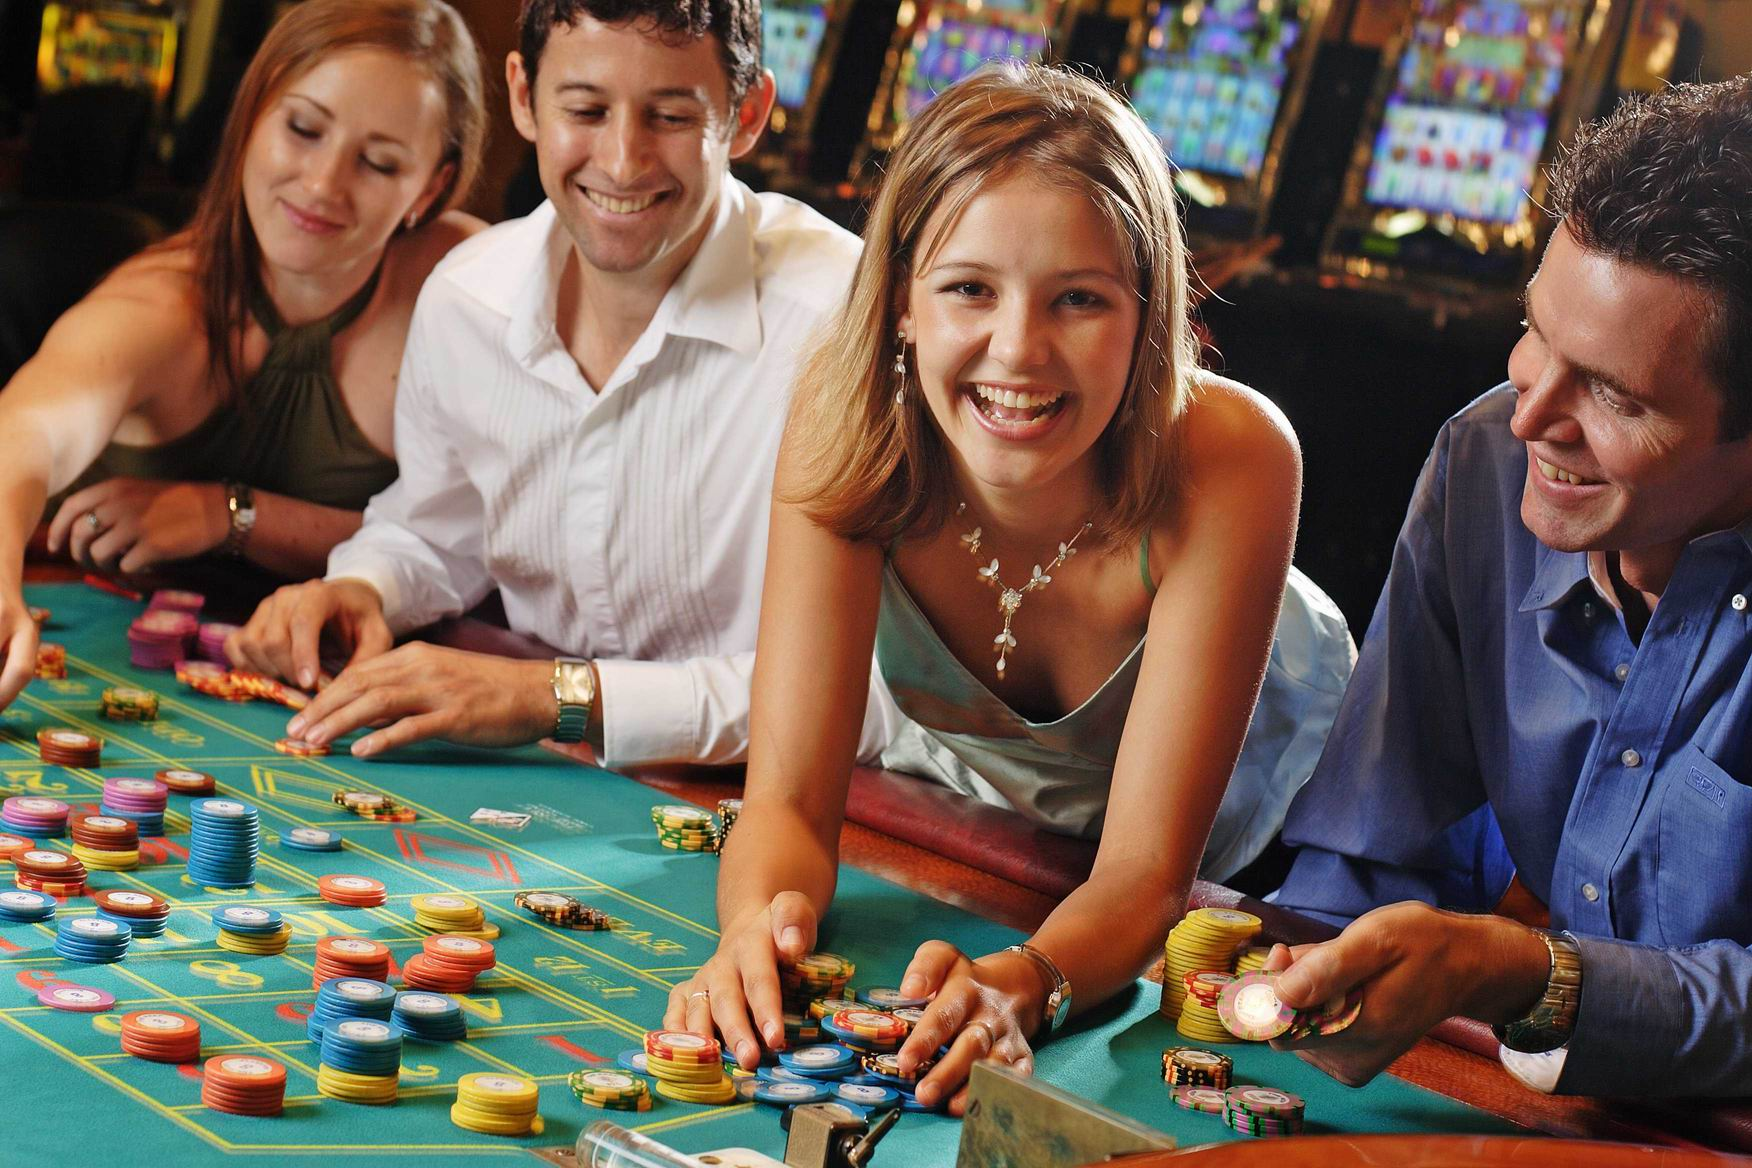 Online gambling stories corsica hotel and casino